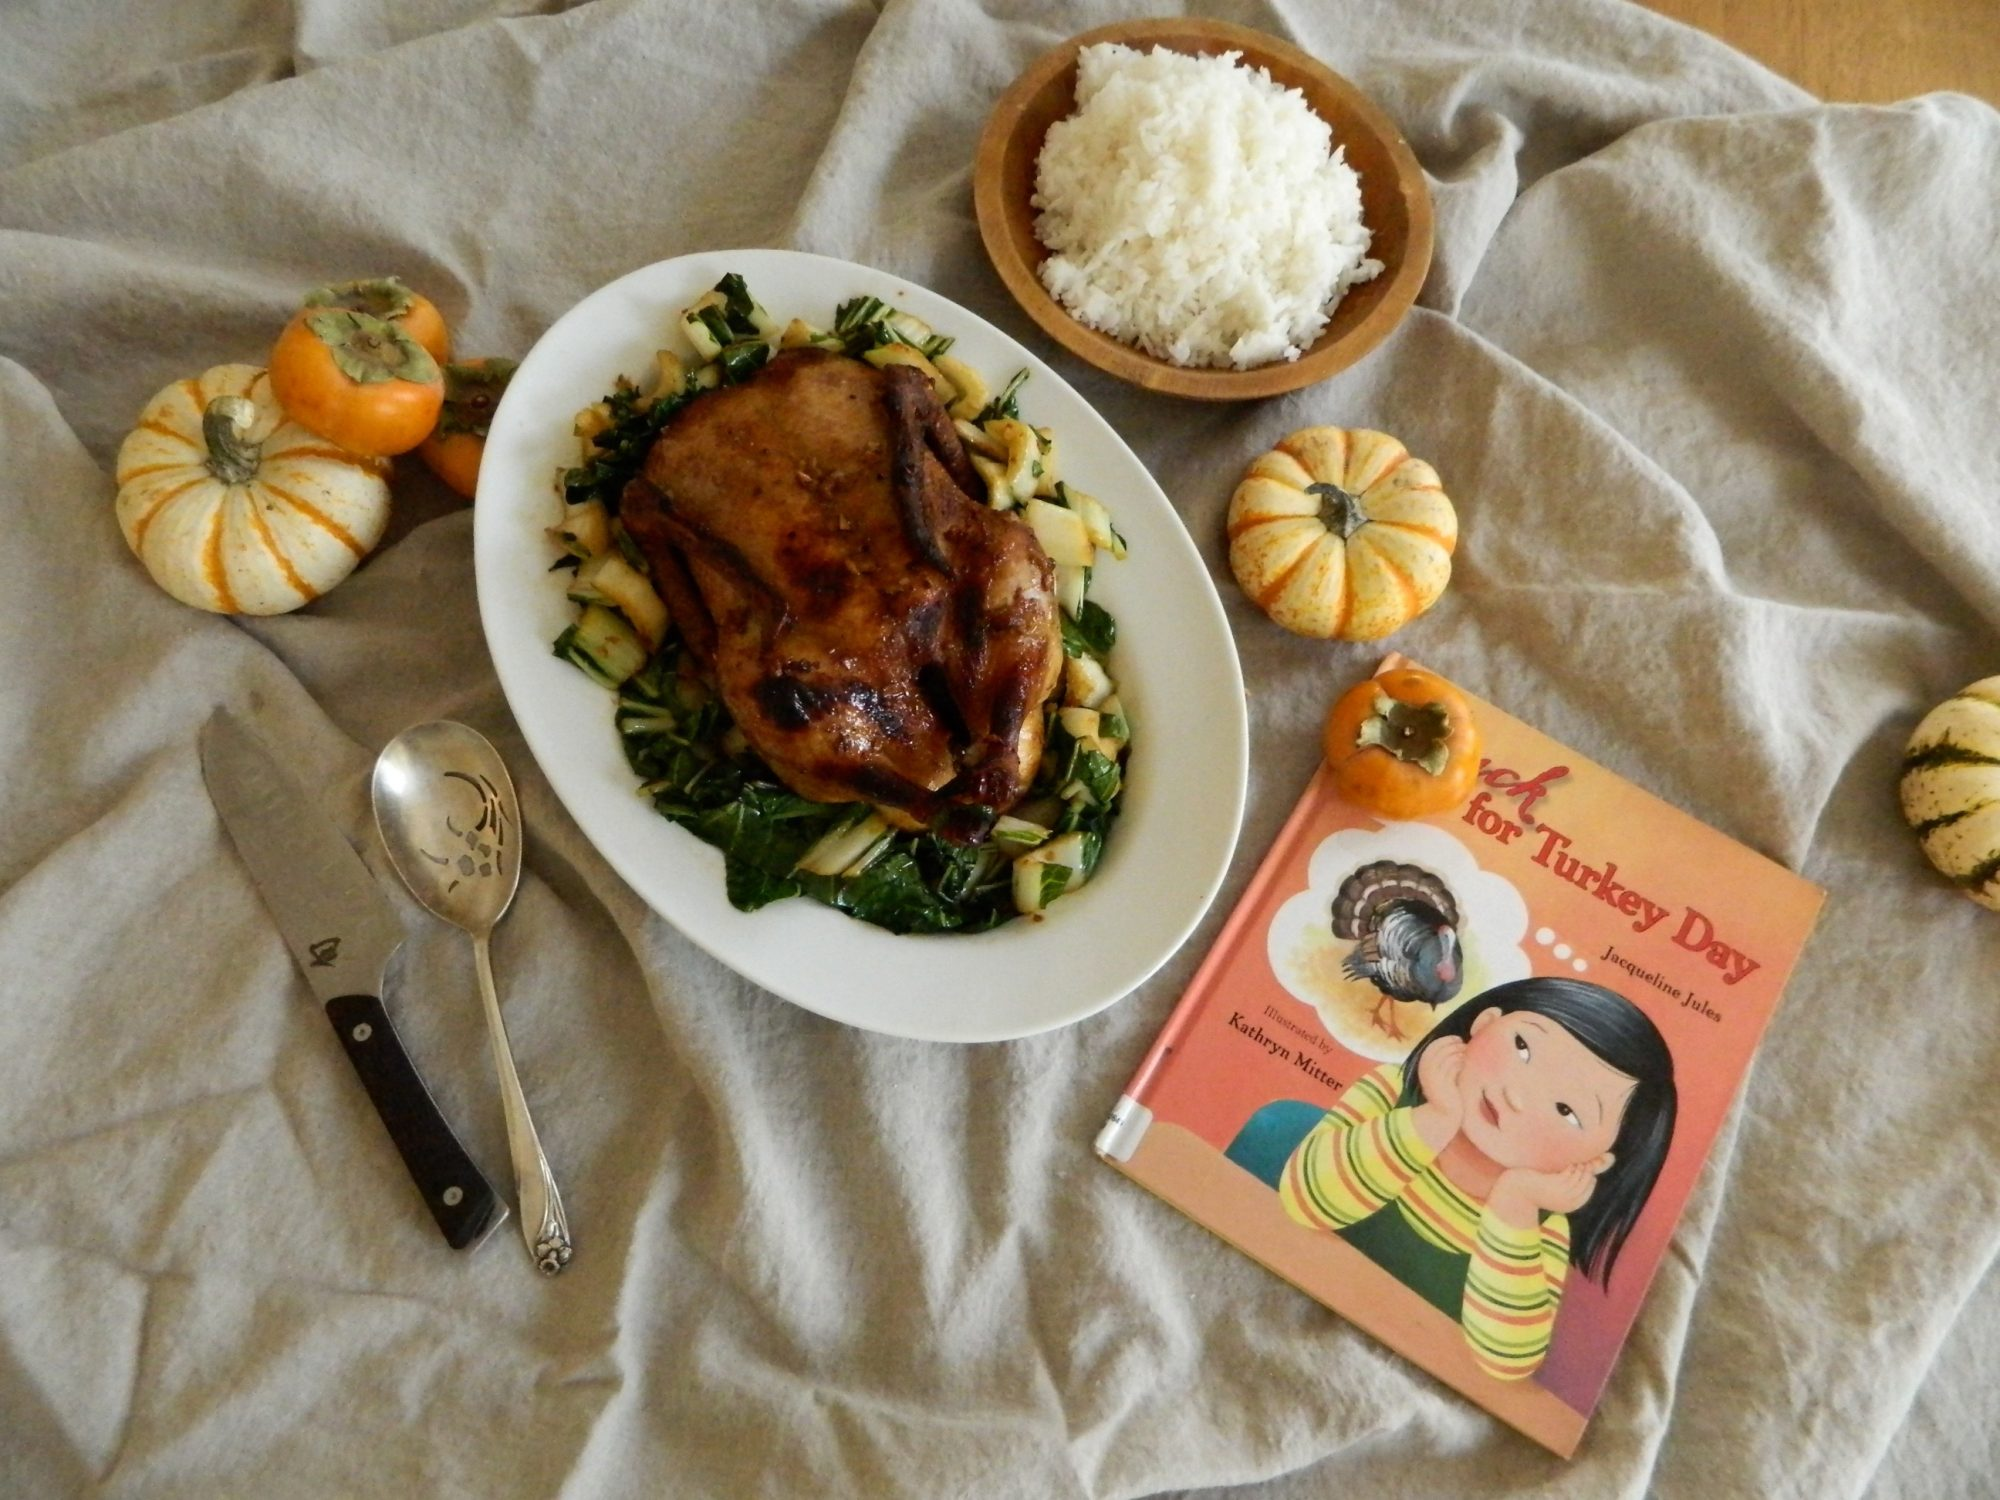 """Five Spice Roast Duck and the book """"Duck for Turkey Day"""""""